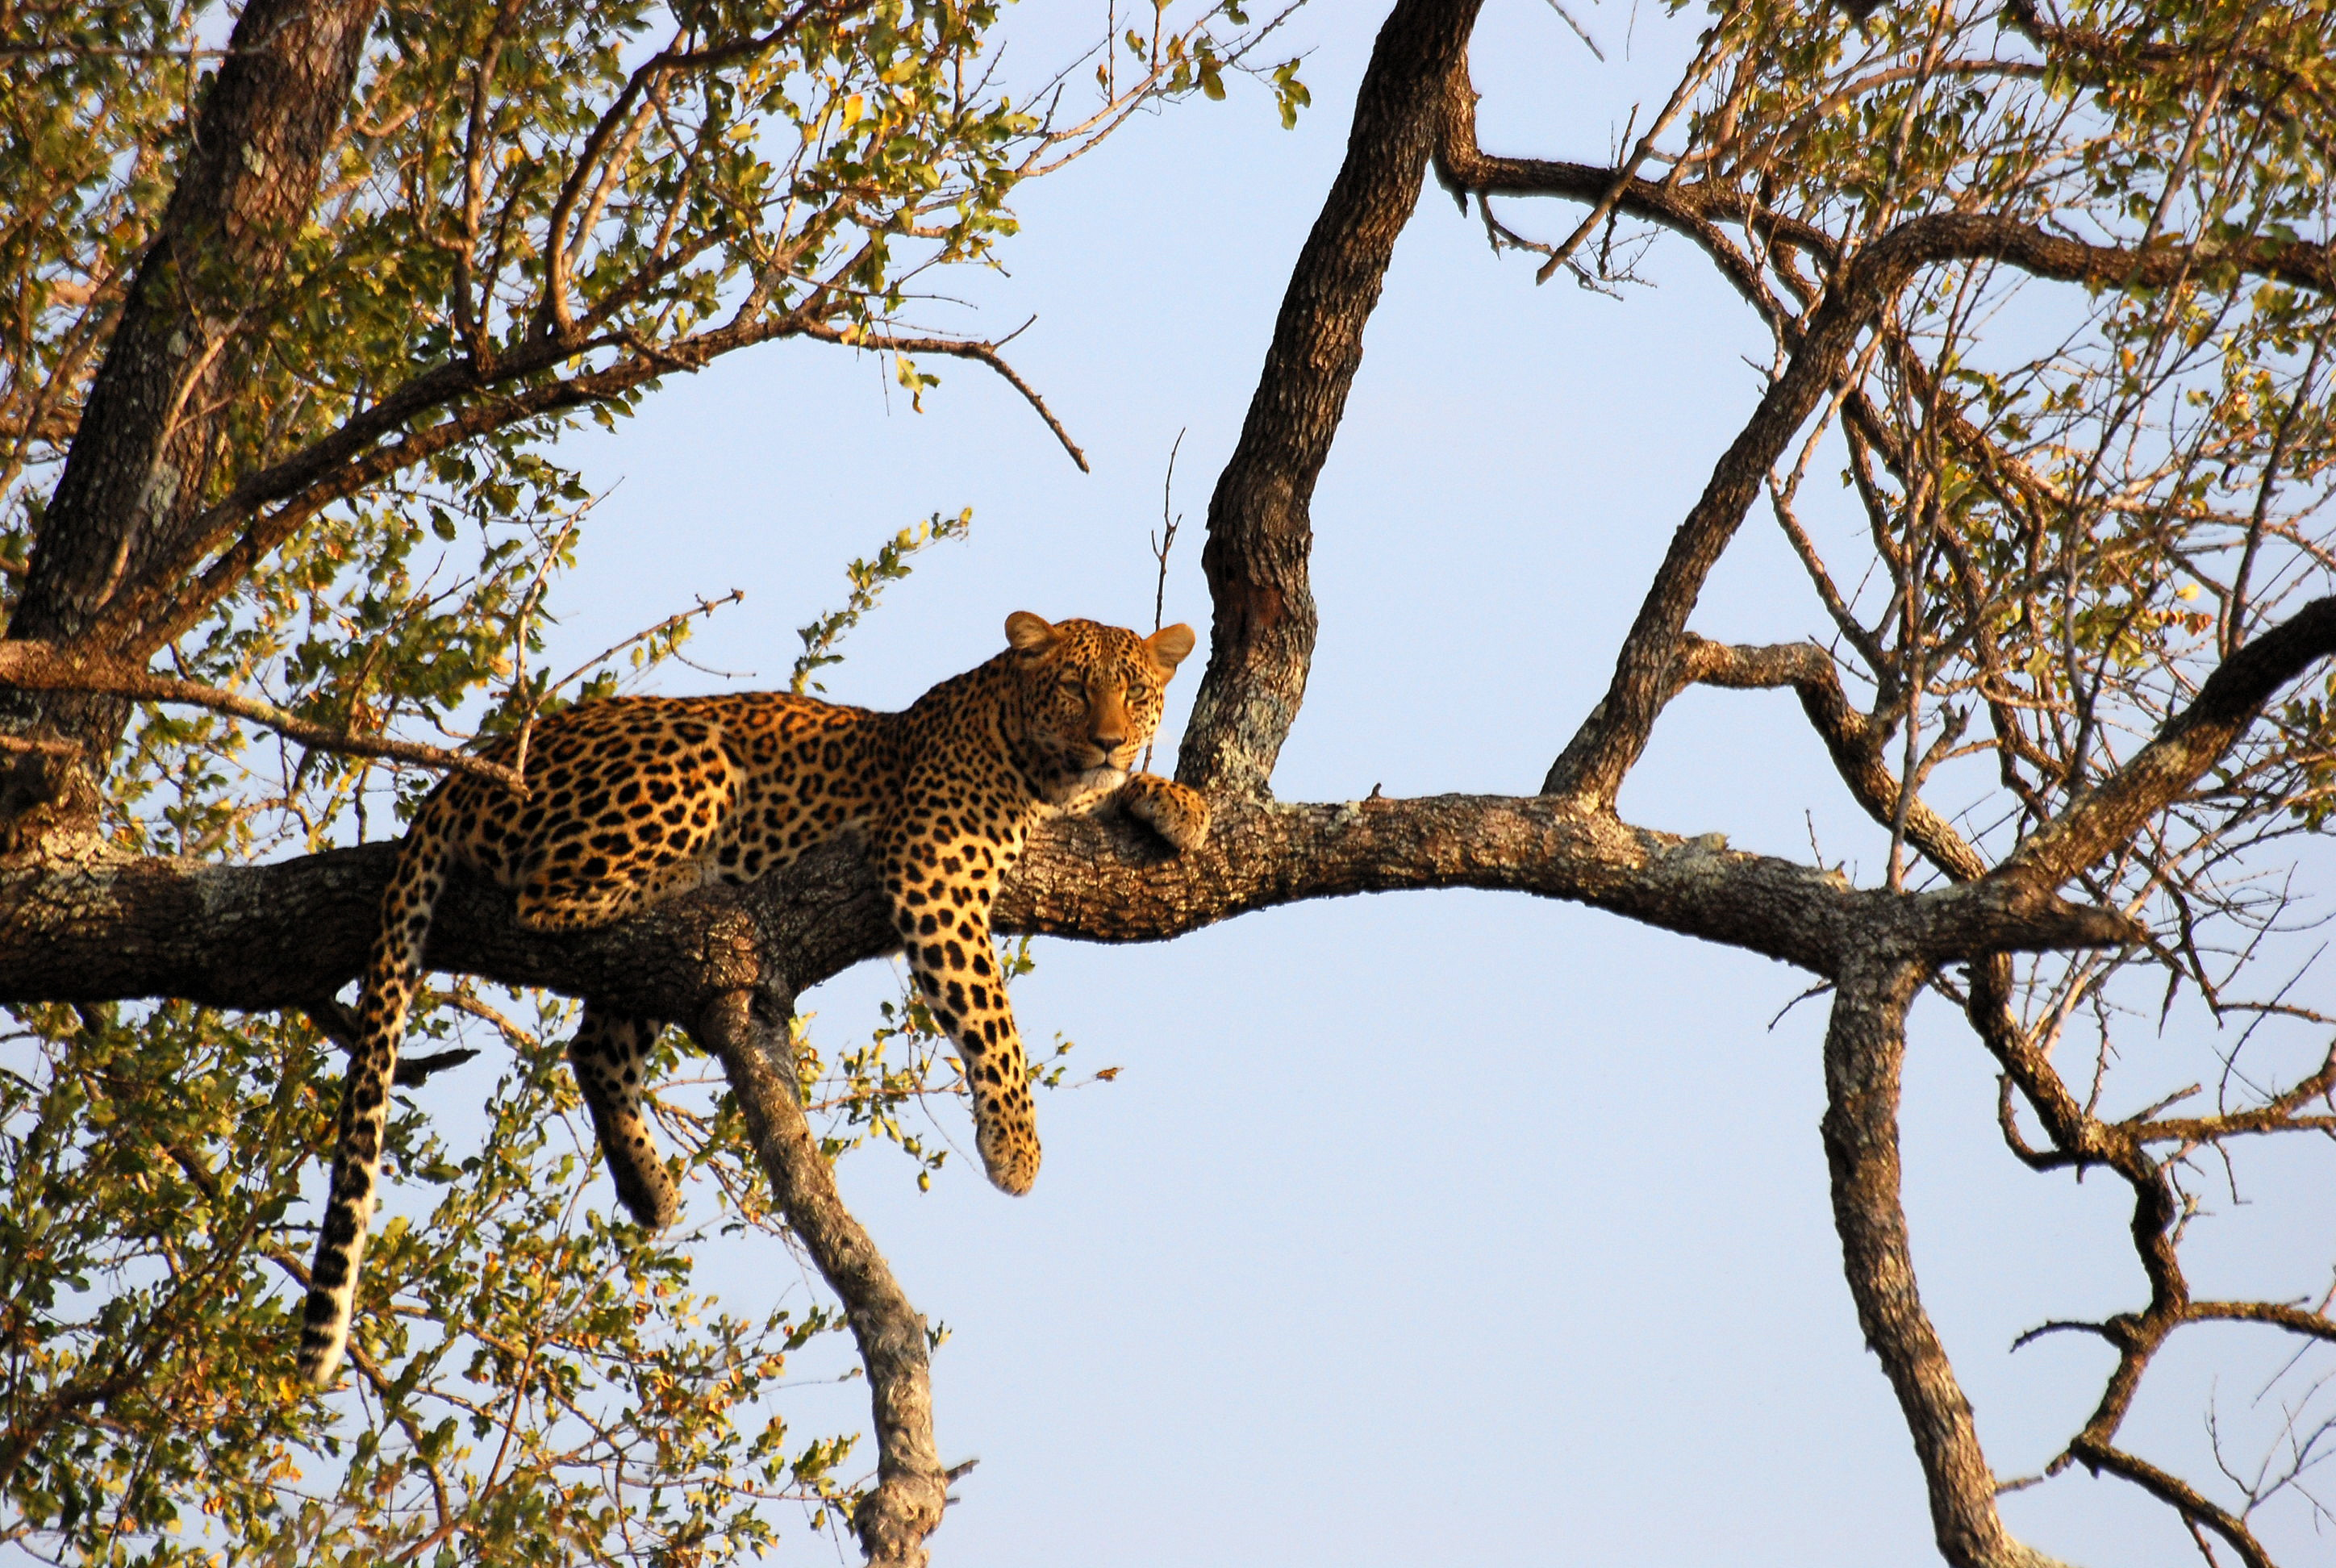 Leopard_on_tree